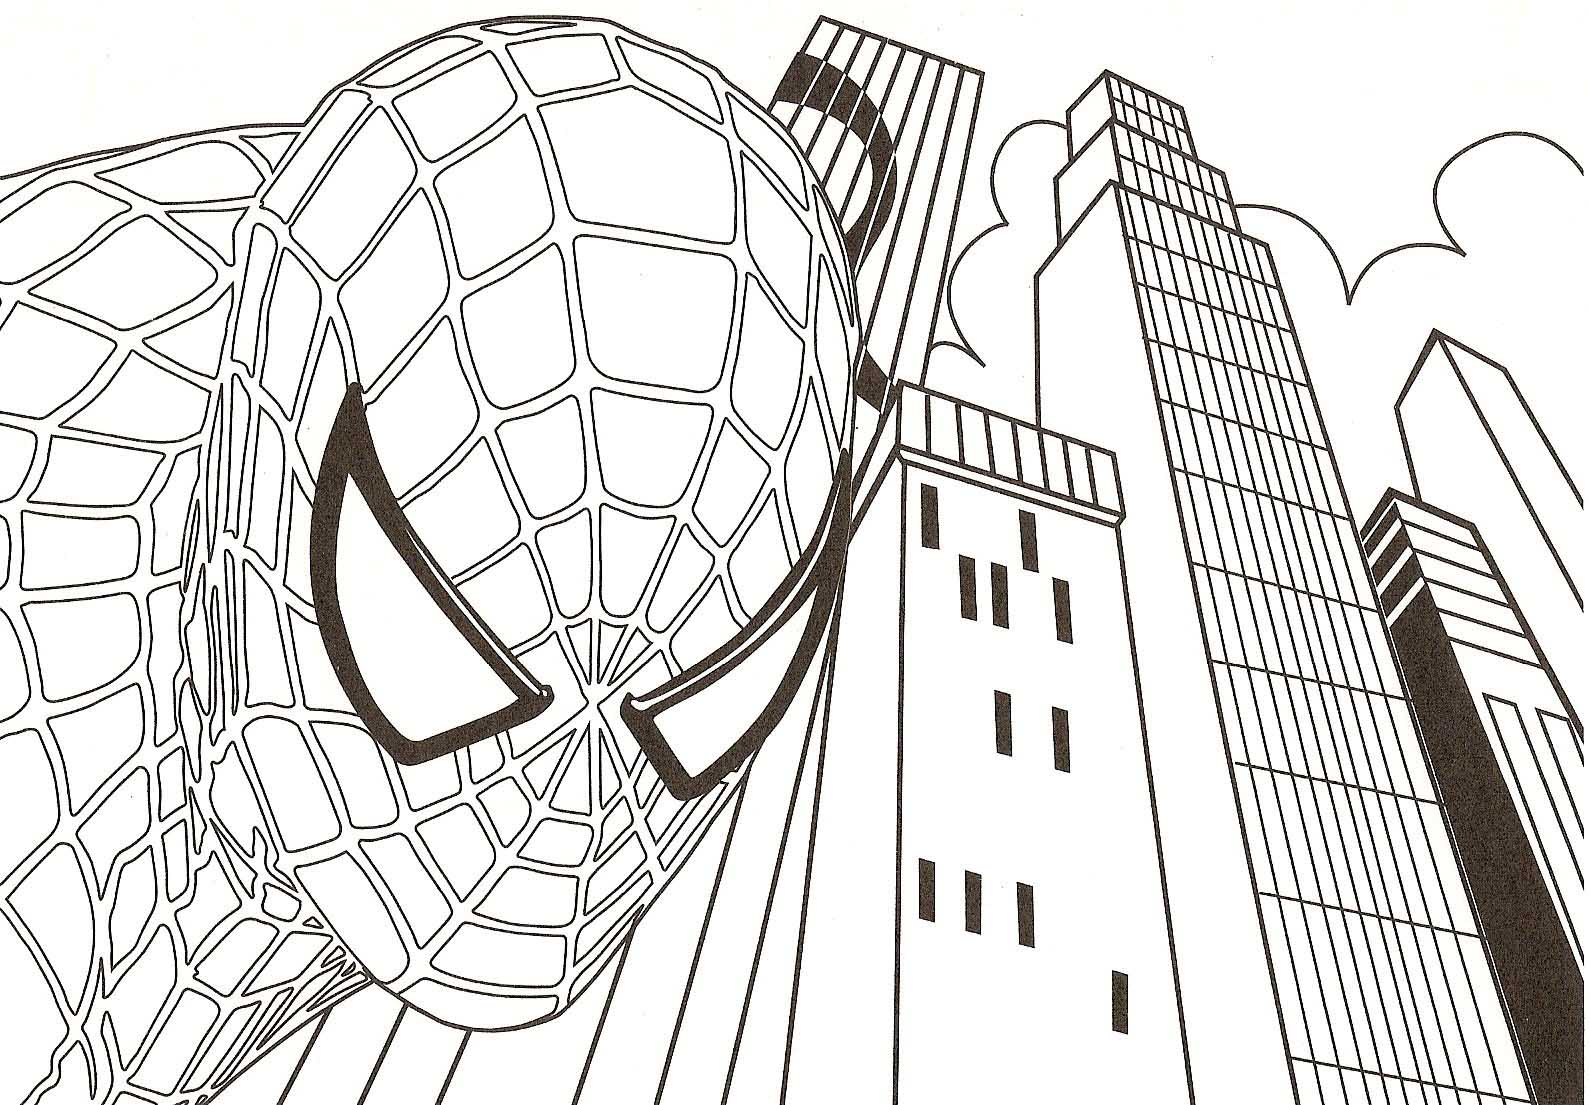 Colouring for kids games - Spiderman Coloring Pages Games